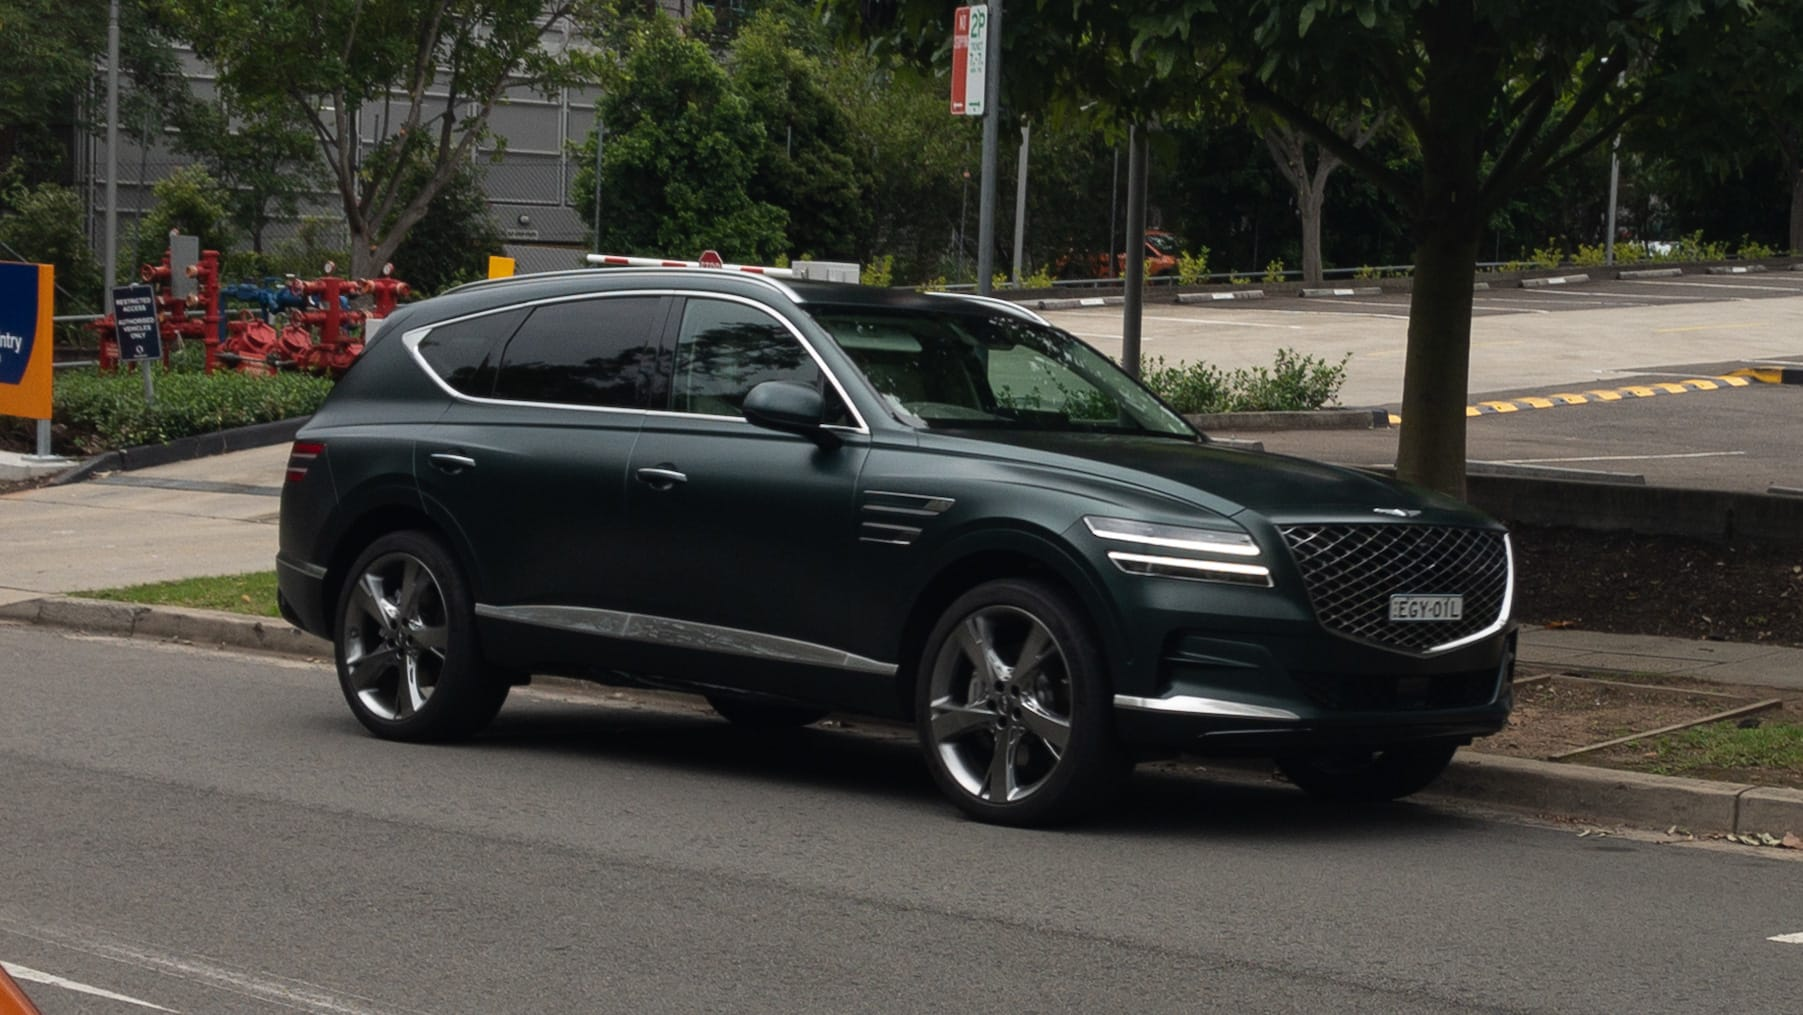 New Genesis Gv80 2020 Spotted Testing In Sydney Bmw X5 Rivalling Large Suv To Get Australian Specific Tune Car News Carsguide